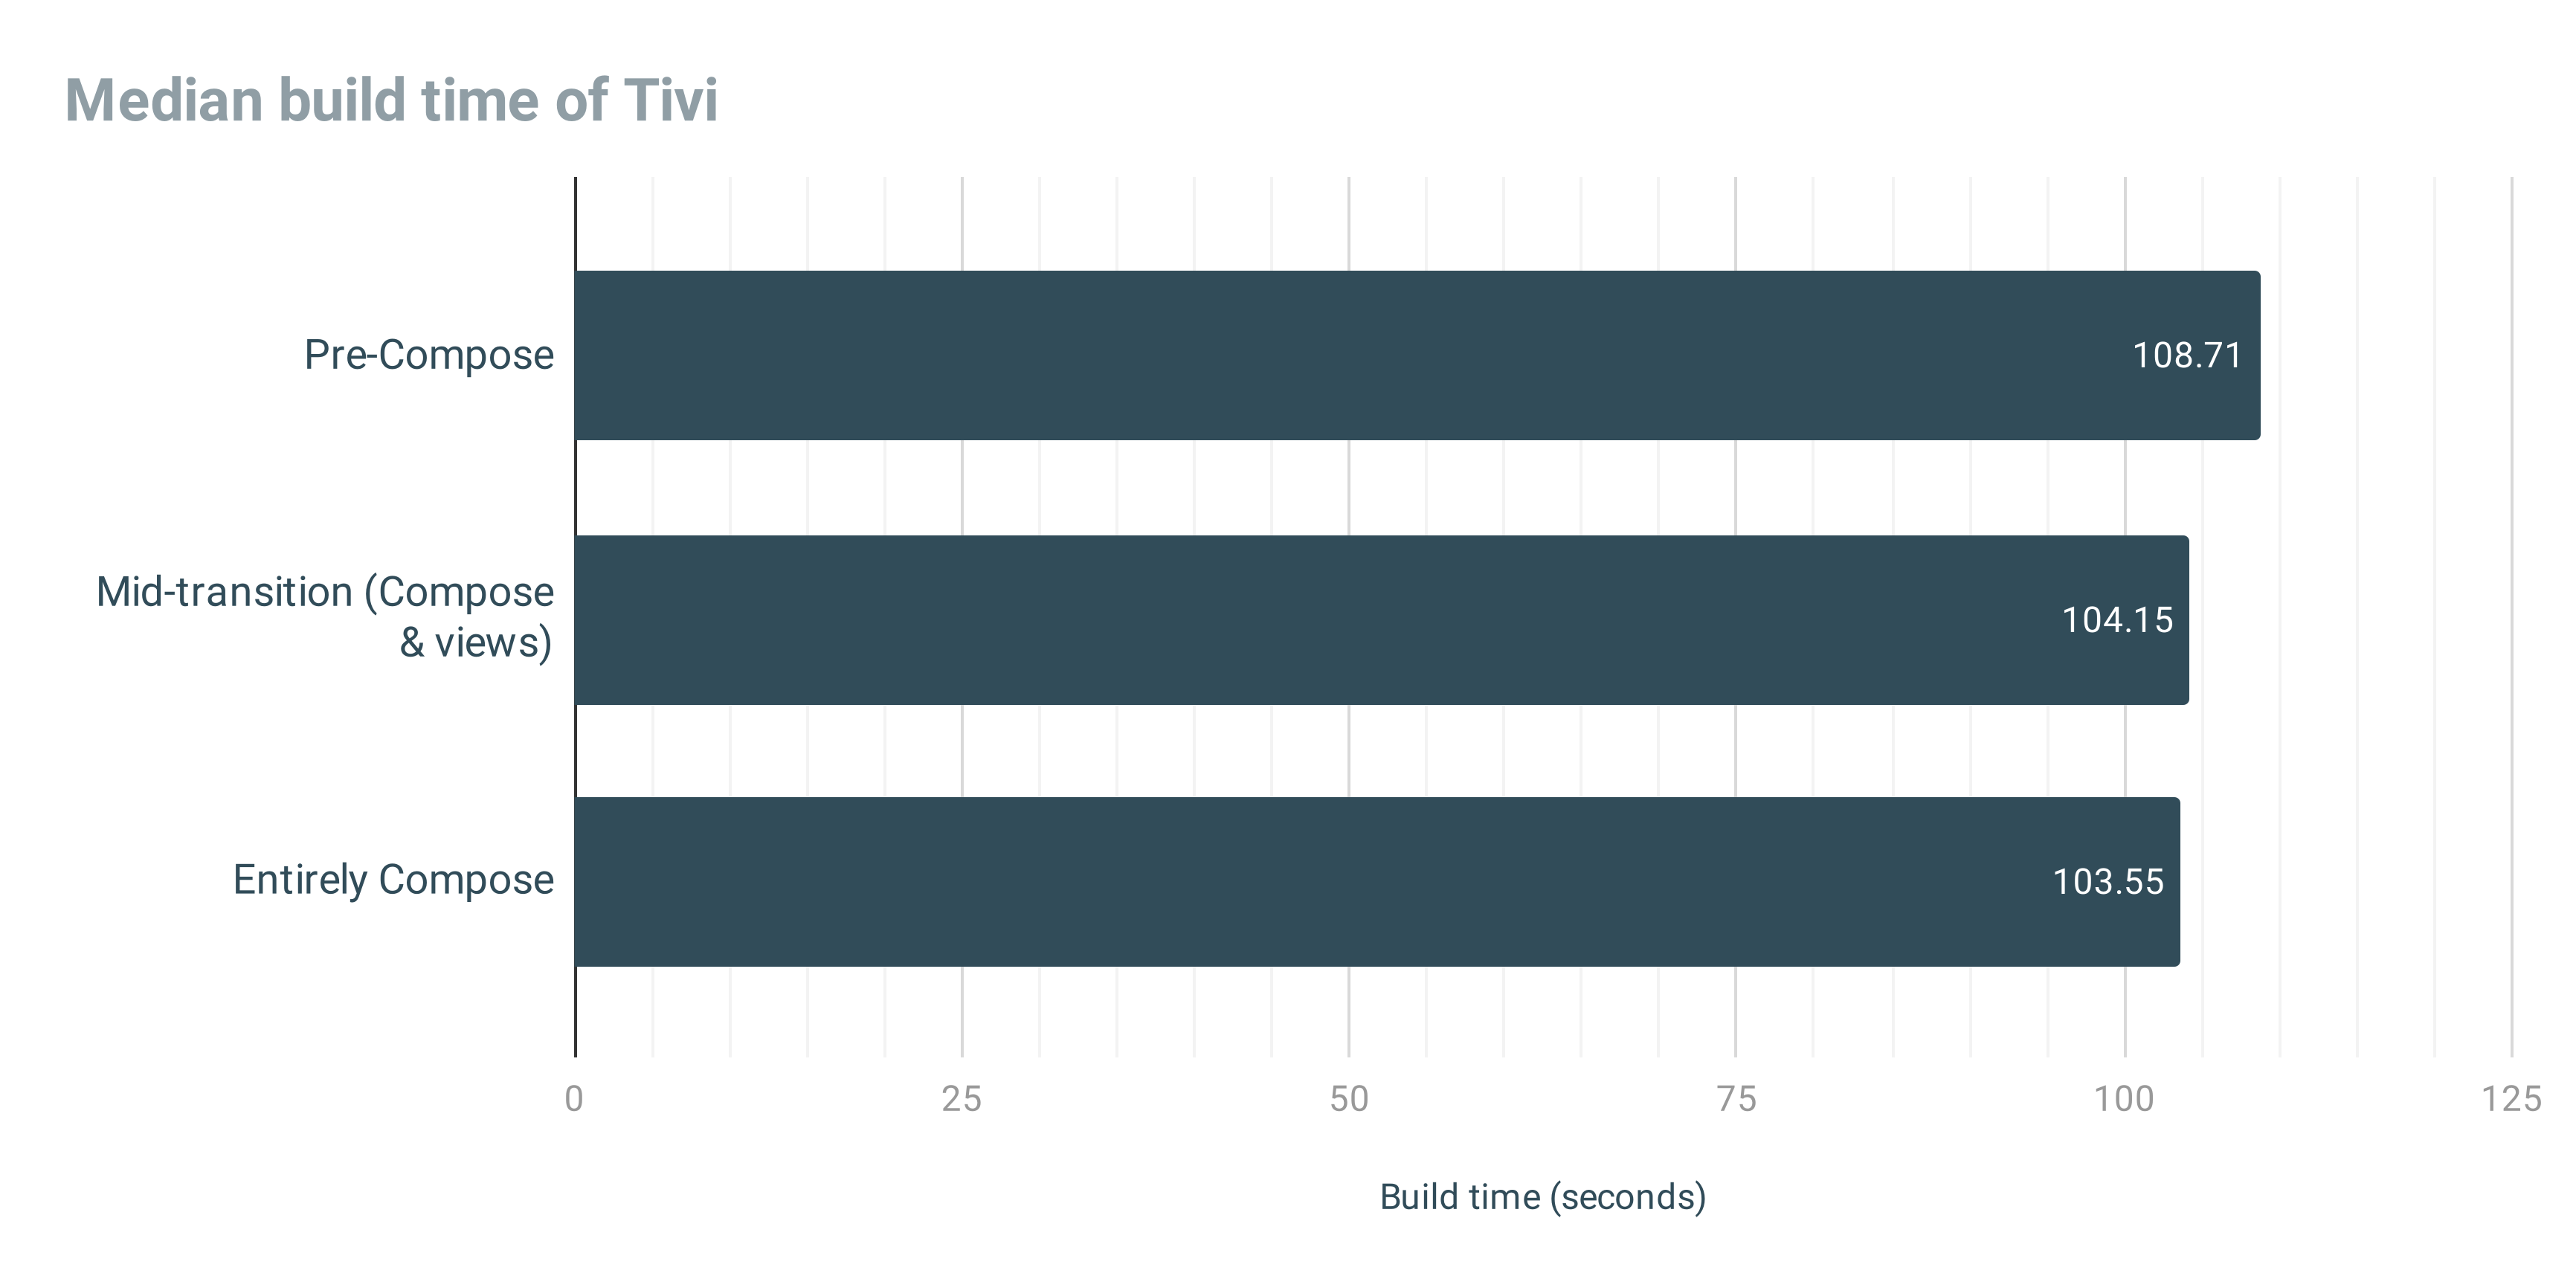 Chart showing median build time of Tivi in seconds. Pre-Compose: 108.71, Mid-transition: 104.15, Entirely Compose: 103.55